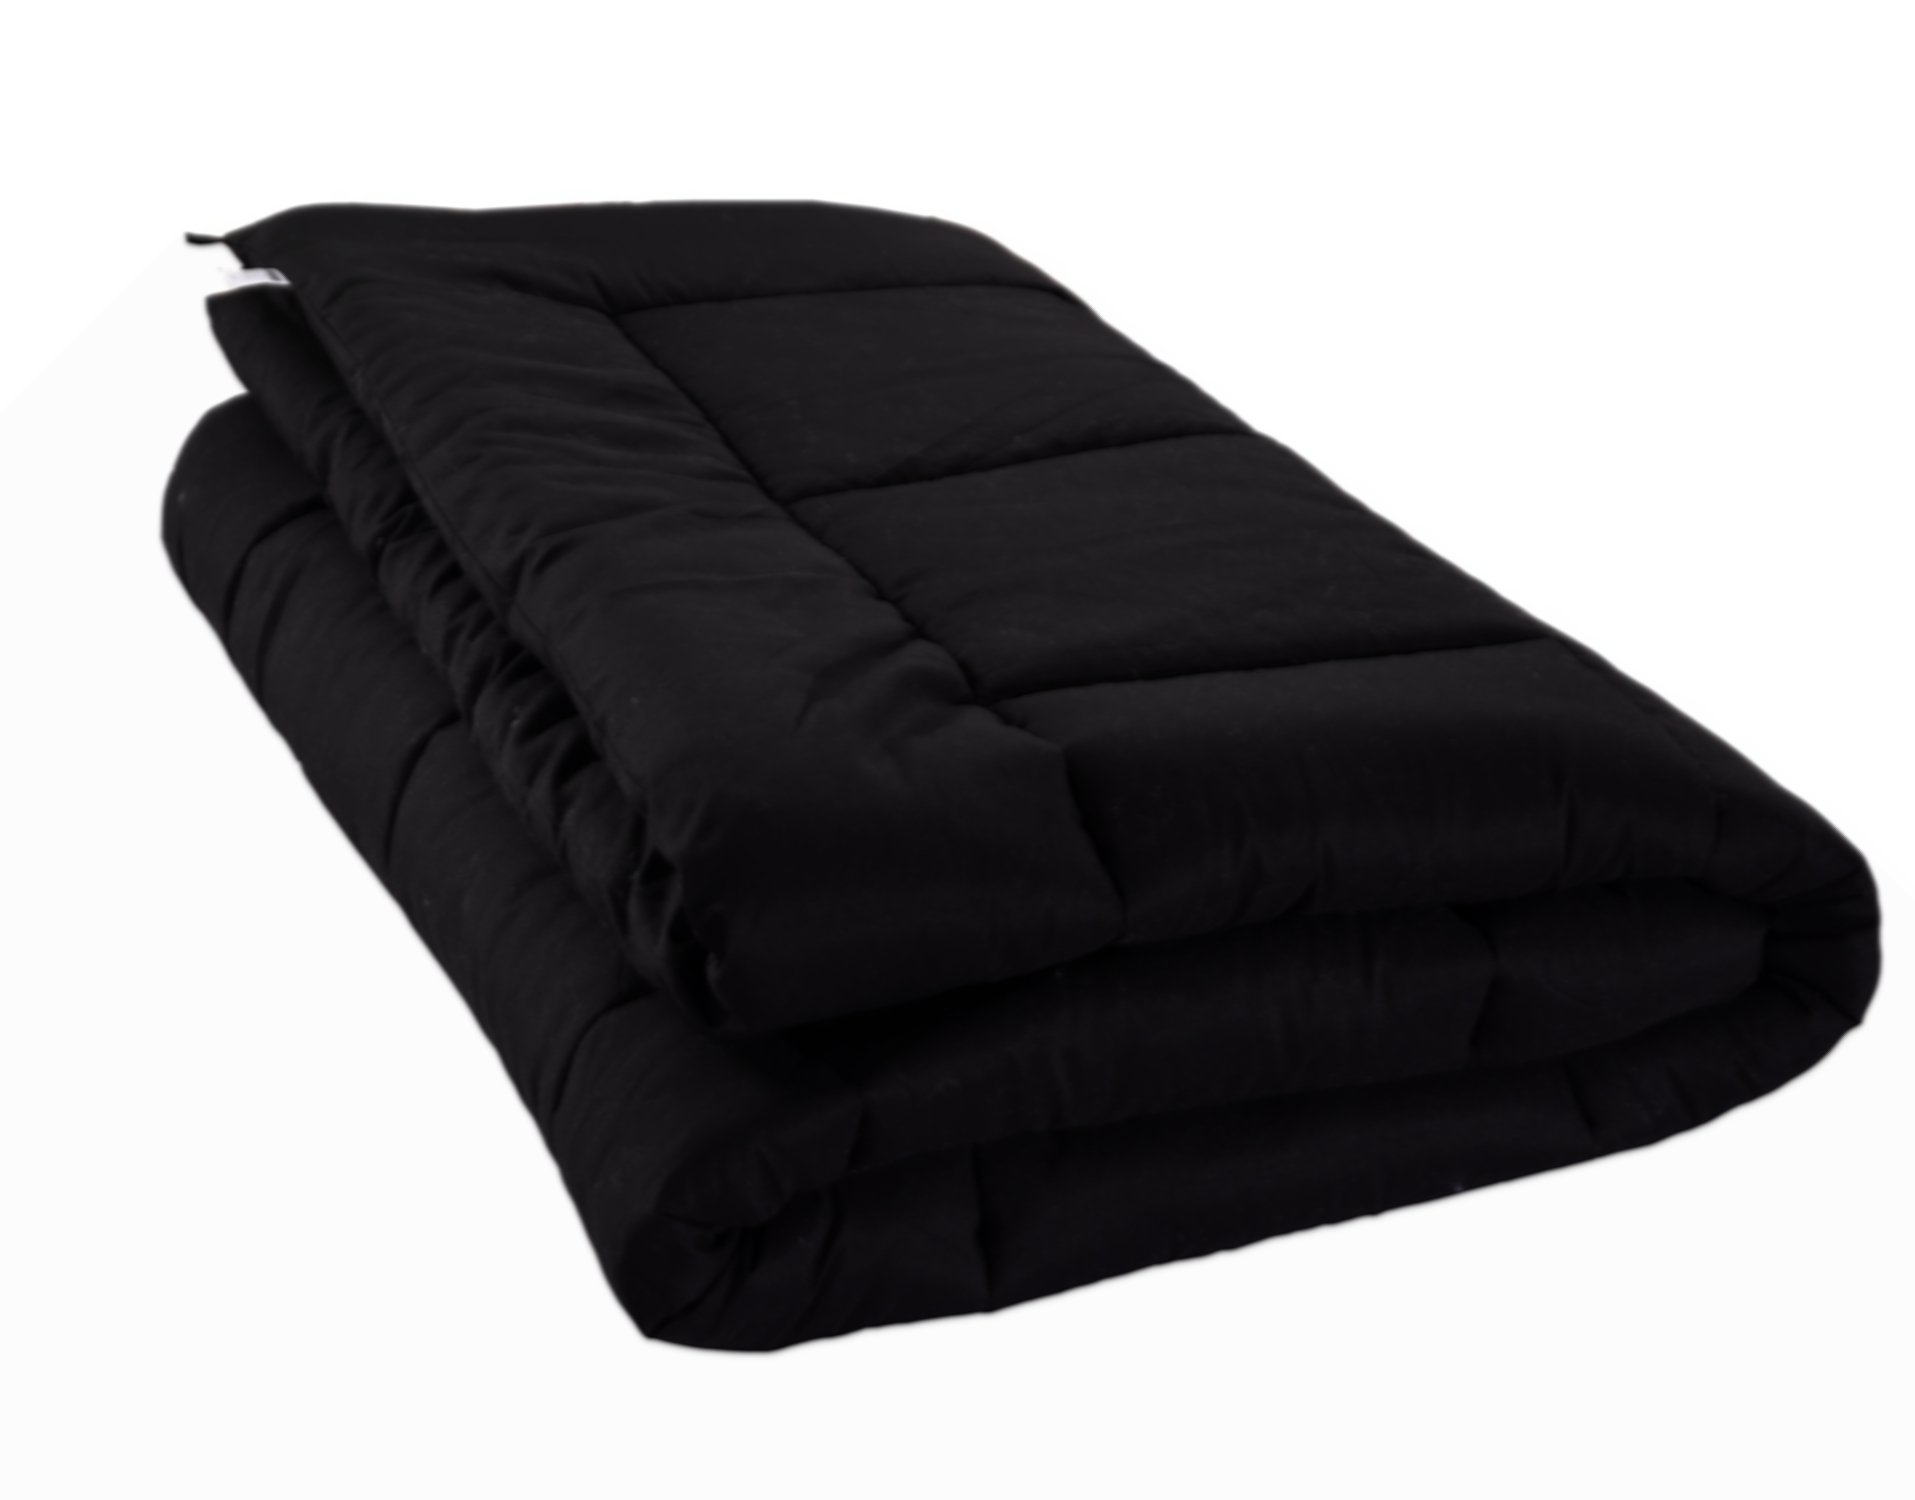 Ghooss All Season Black Bedding Down Alternative Comforter -Hotel Quality Luxury Quilt with Corner Tabs-Hypoallergenic-Super Microfiber Fill -Machine Washable-Queen by Ghooss (Image #5)